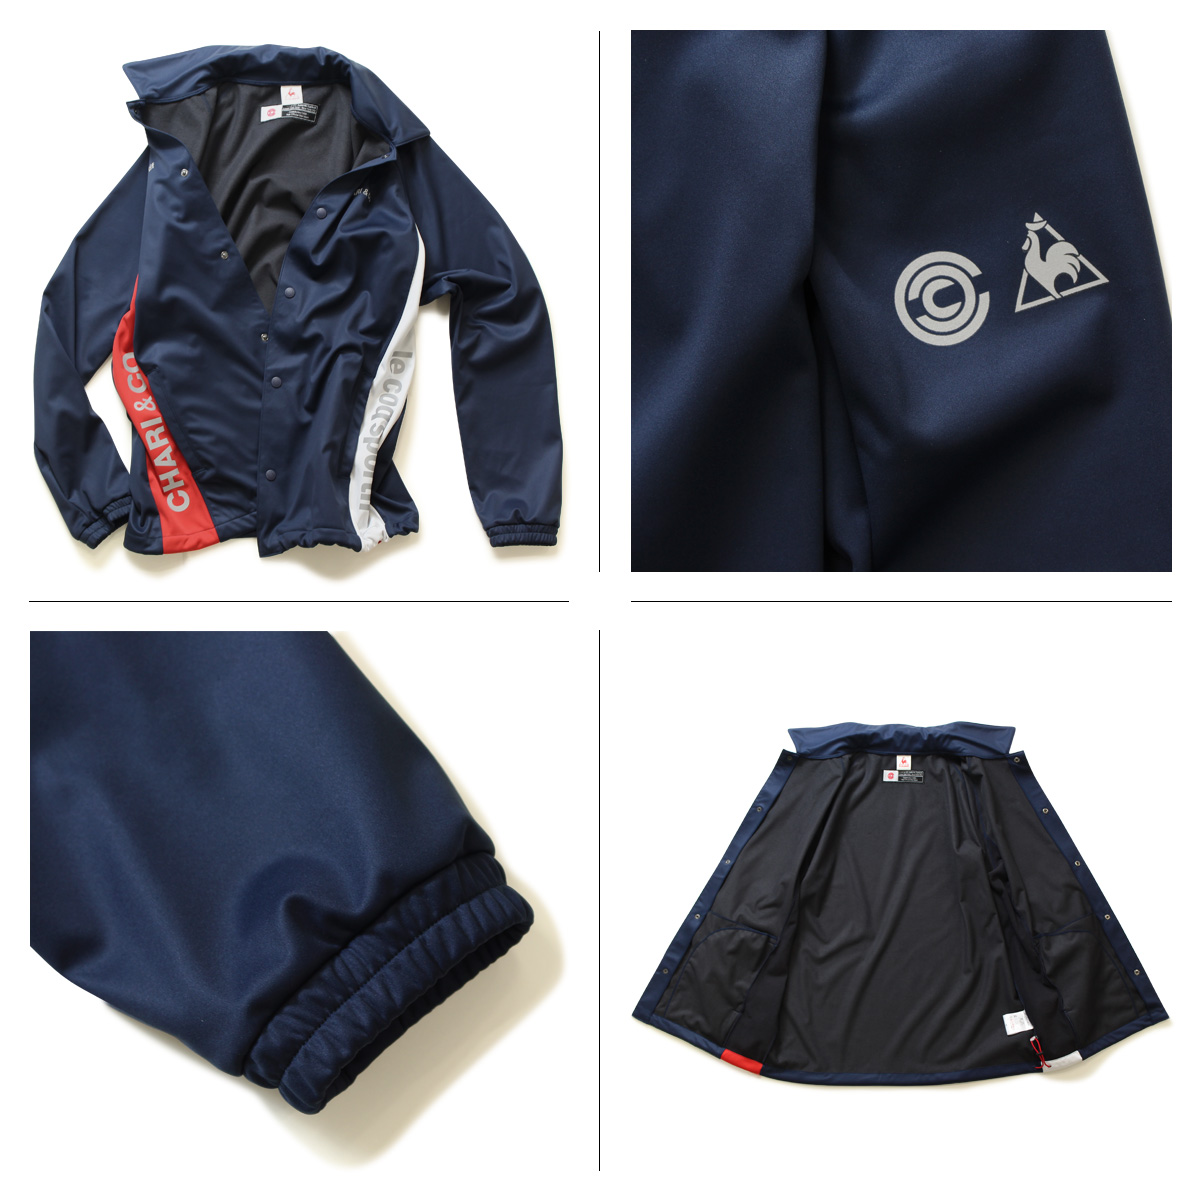 195ff6026 CHARI CO NYC coaches jacket mens x LE COQ SPORTIF jacket chariandcoa ×  Alcock sportif cycle Jersey  11   1 new in stock